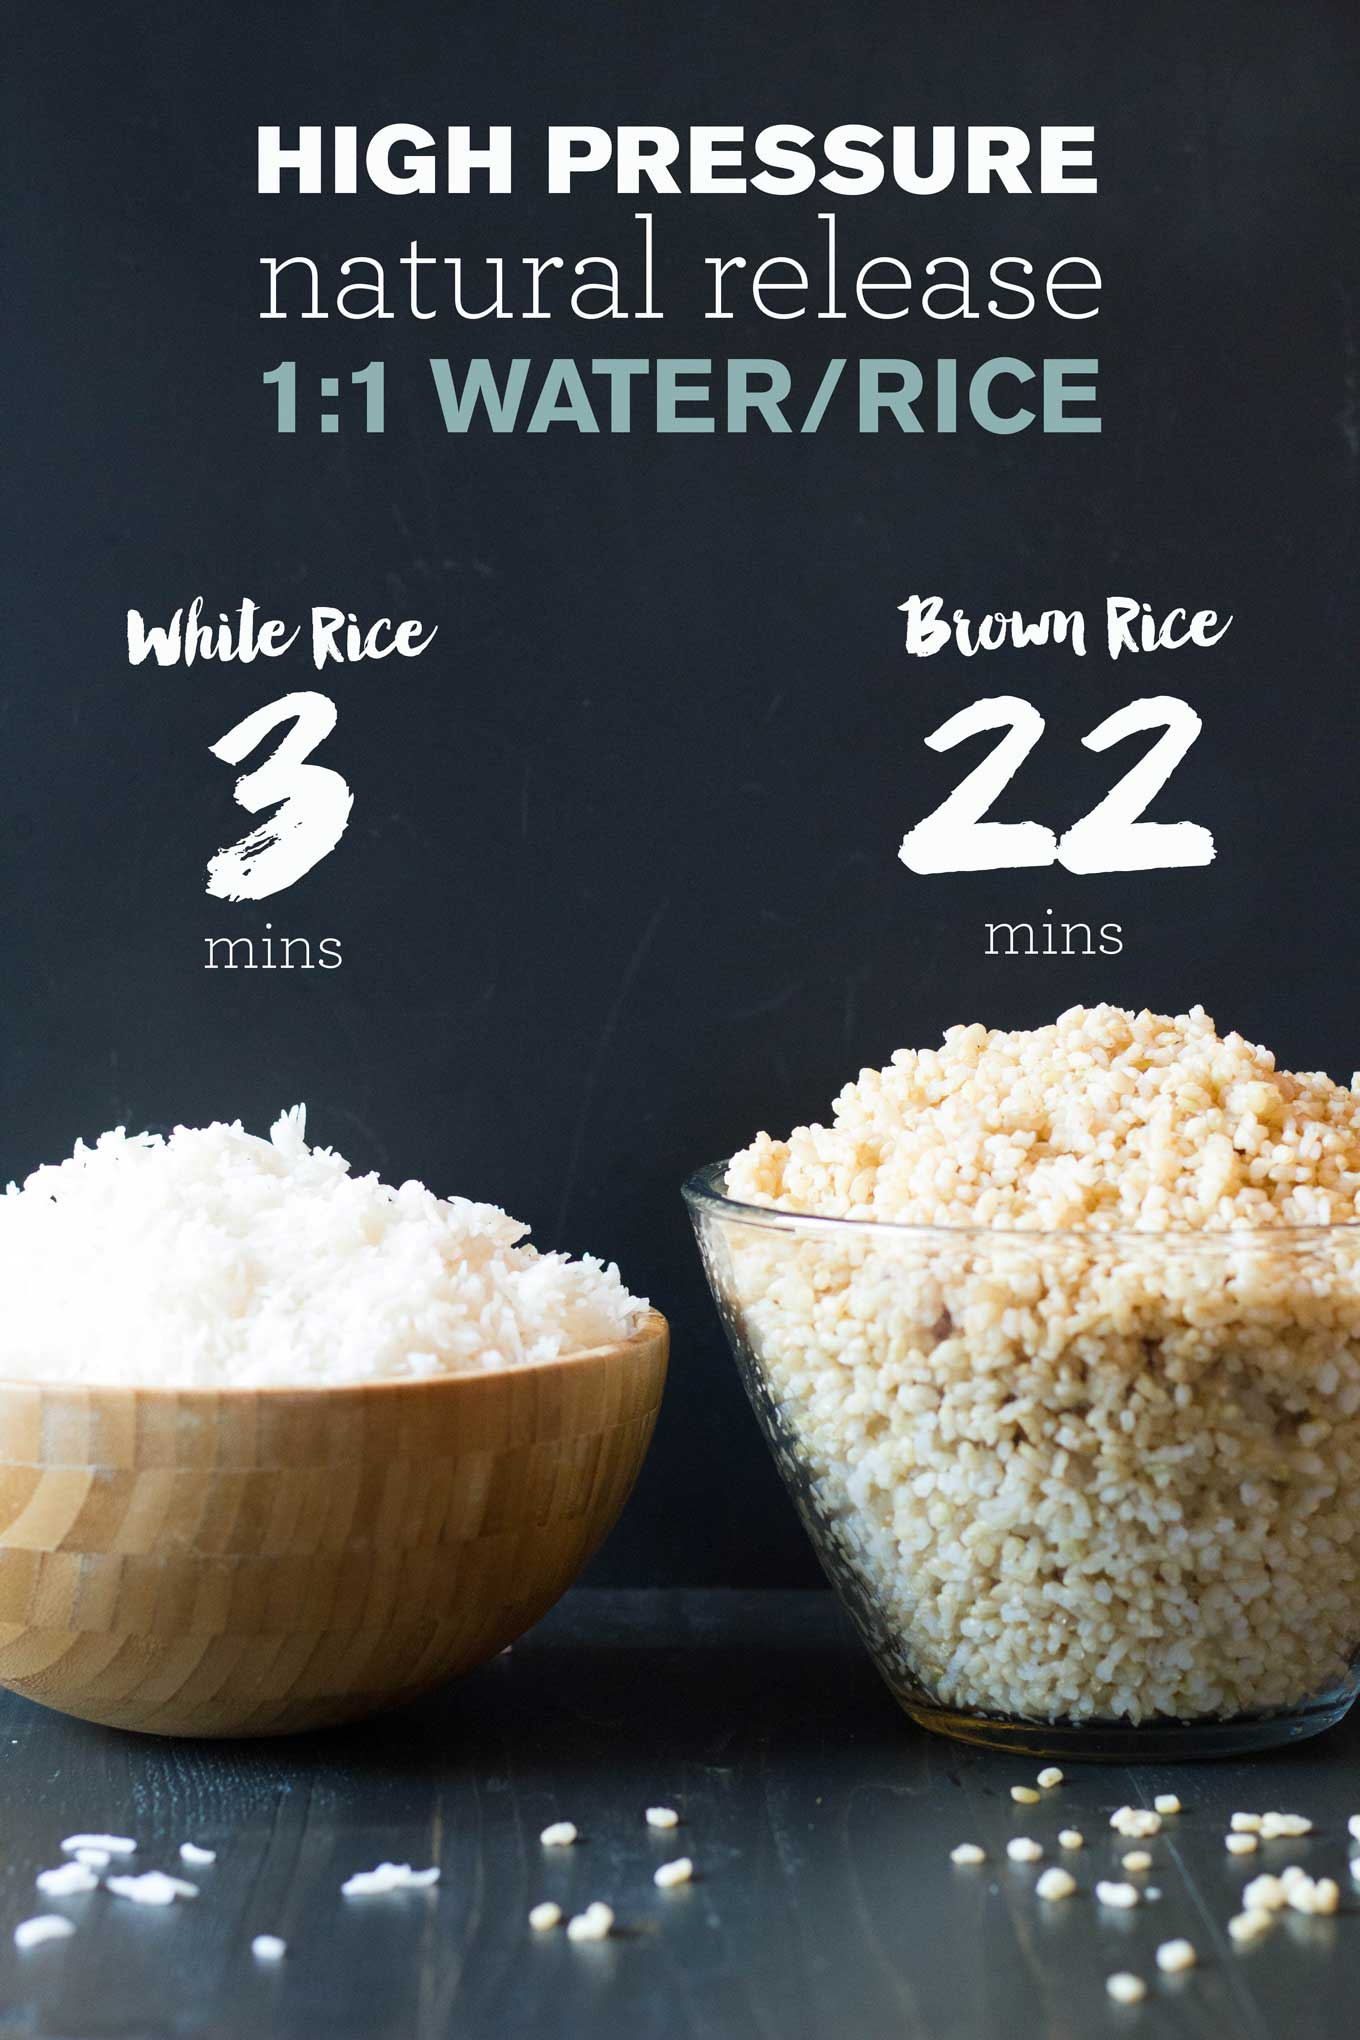 How to Cook Rice in an Instant Pot | Cook White Rice Instant Pot | Cook Brown Rice Instant Pot | https://eatwithinyourmeans.com